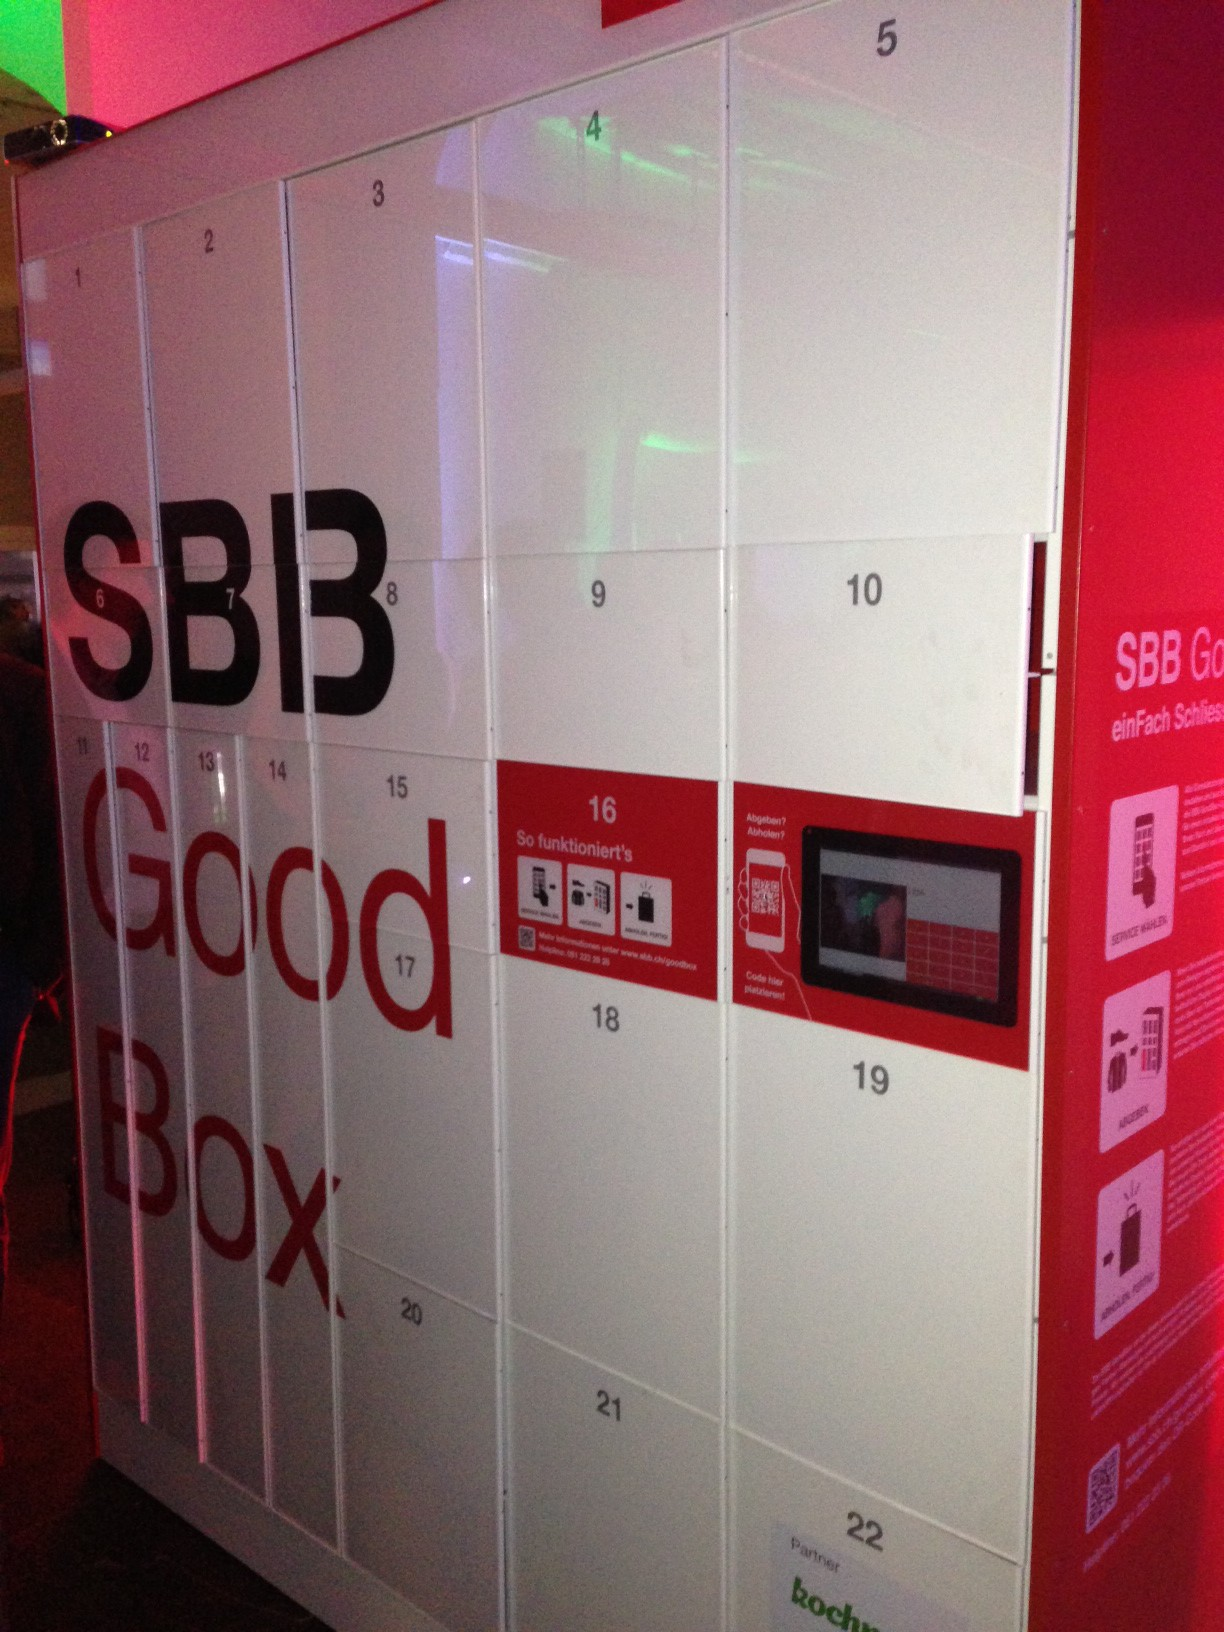 SBB Good Box